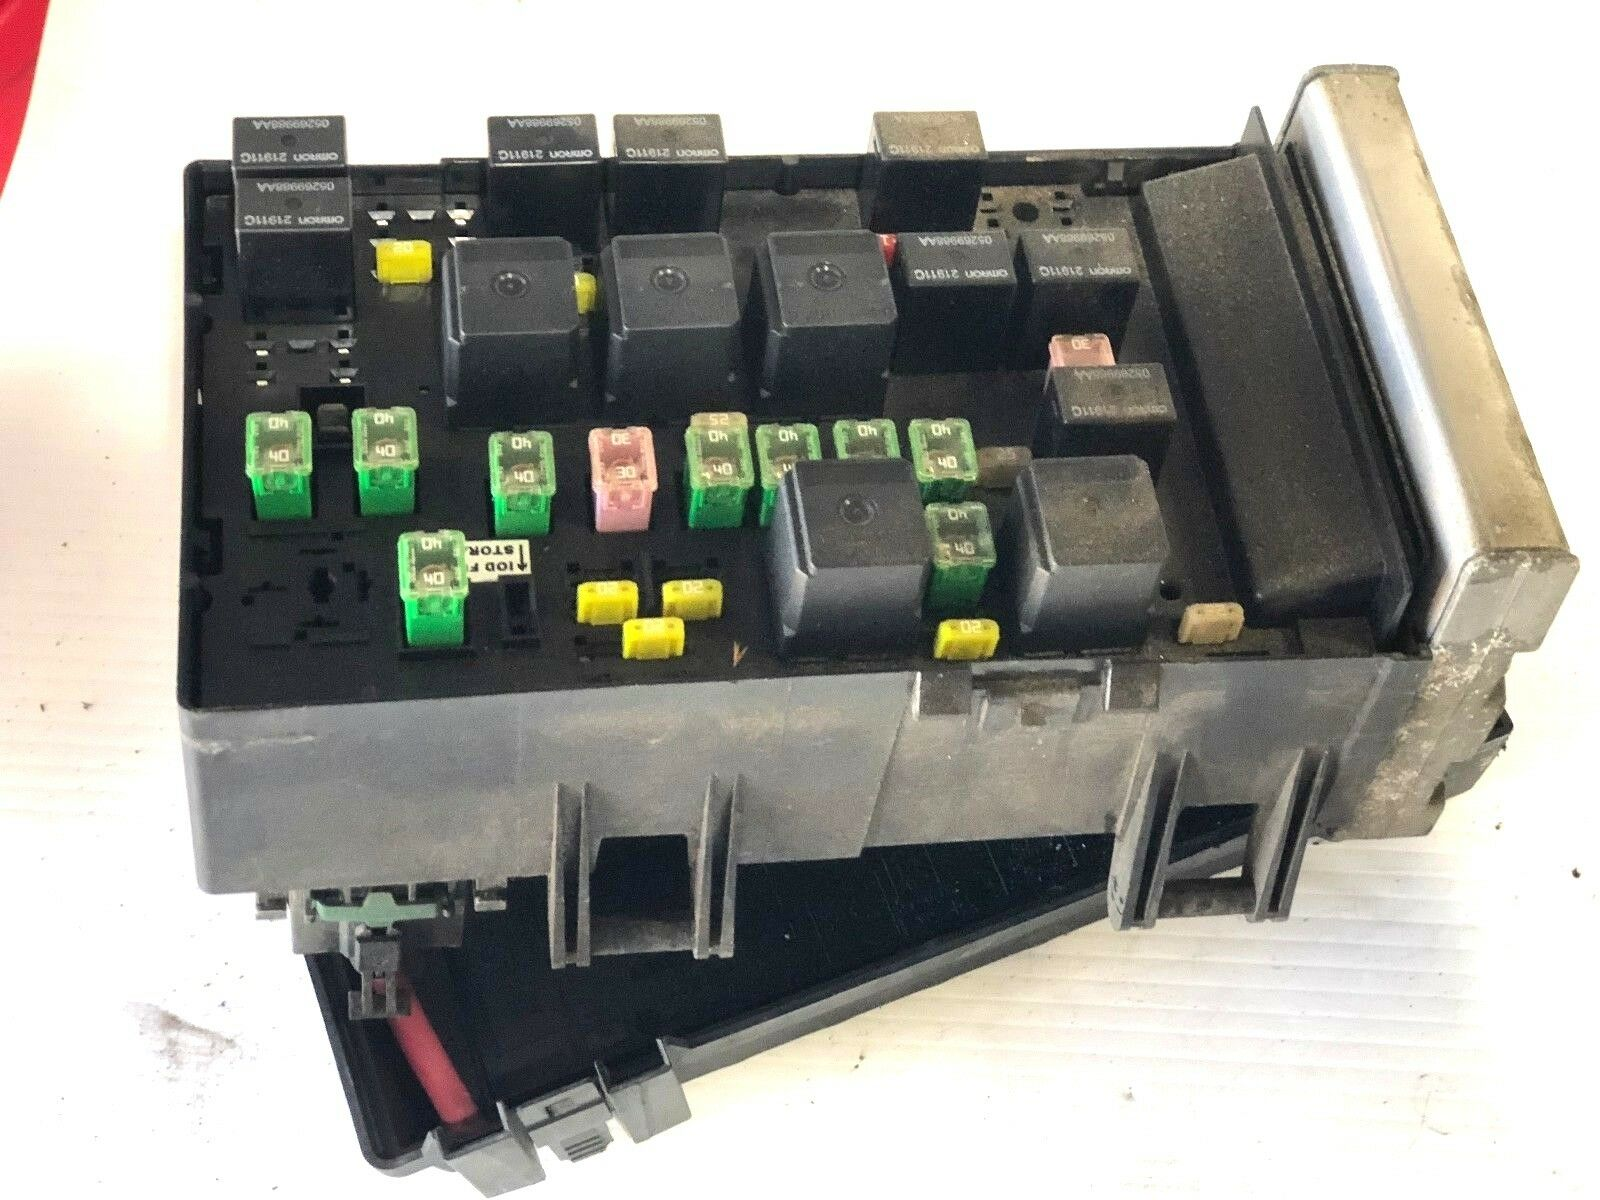 2003 2005 Dodge Caravan Power Module Fuse Box Relay Control Unit 02 05144506af Oe 1 Of 5only Available See More